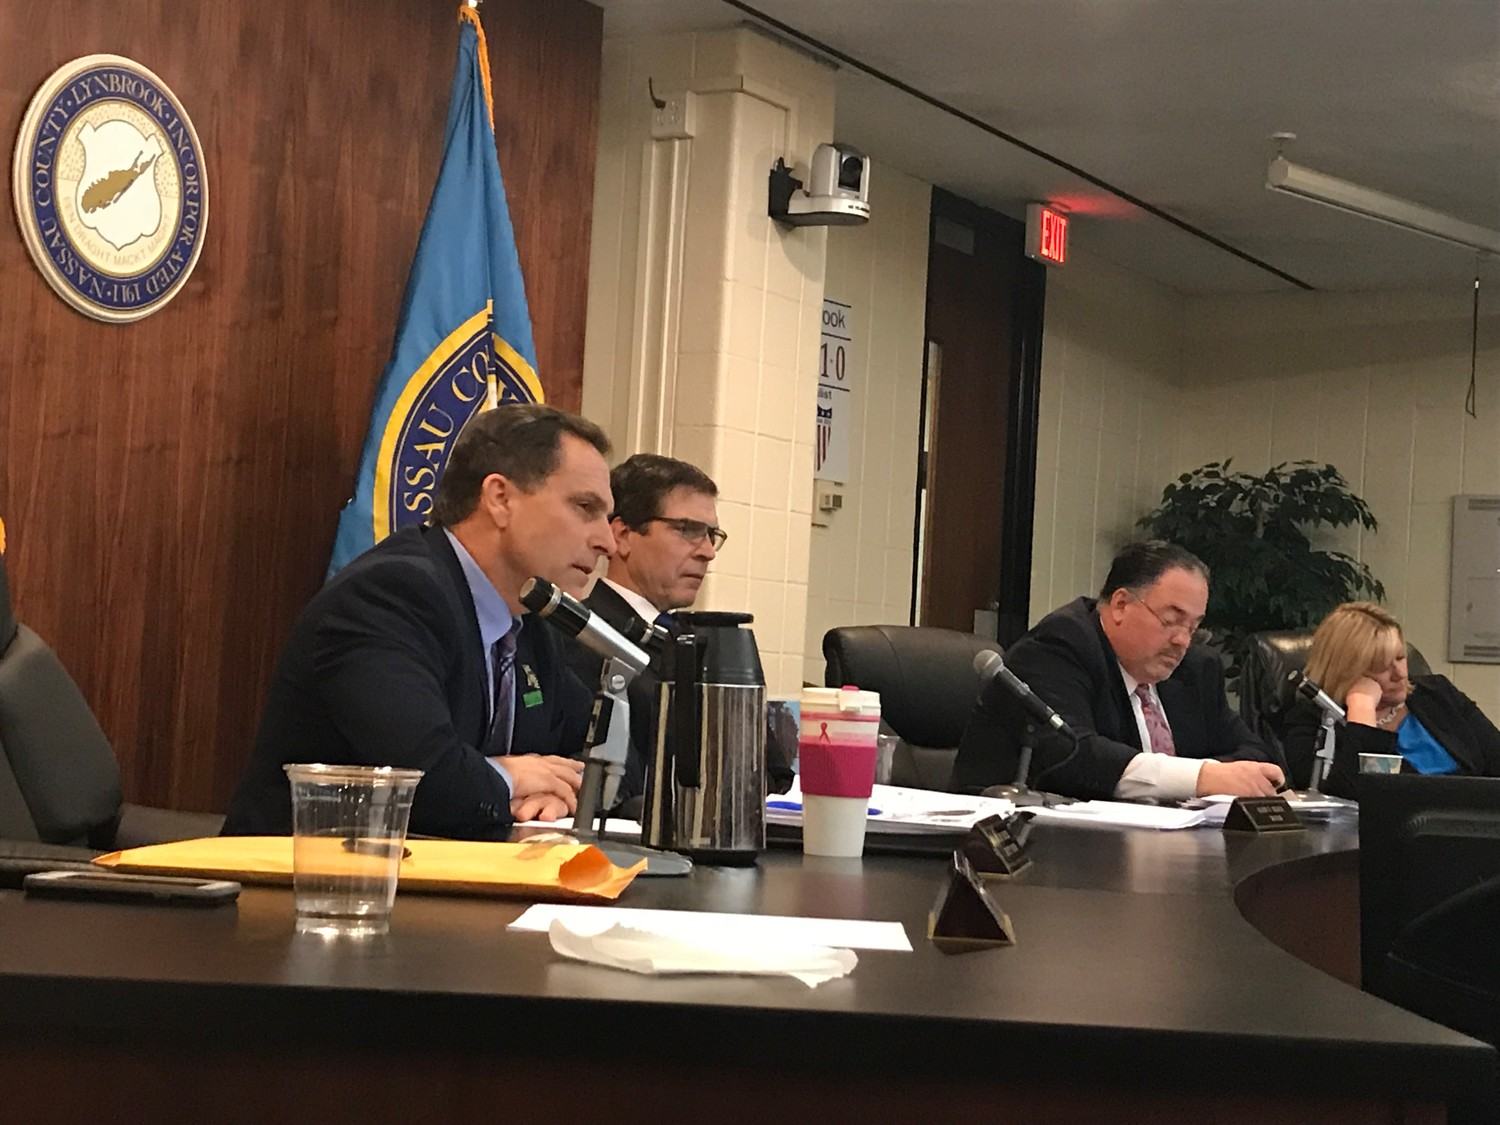 At Monday's village board meeting, Deputy Mayor Hilary Becker, far left, was pressed by residents about his reasons for running for mayor and for opposing the Cornerstone at Lynbrook project. He said his intentions are to help the village prosper.